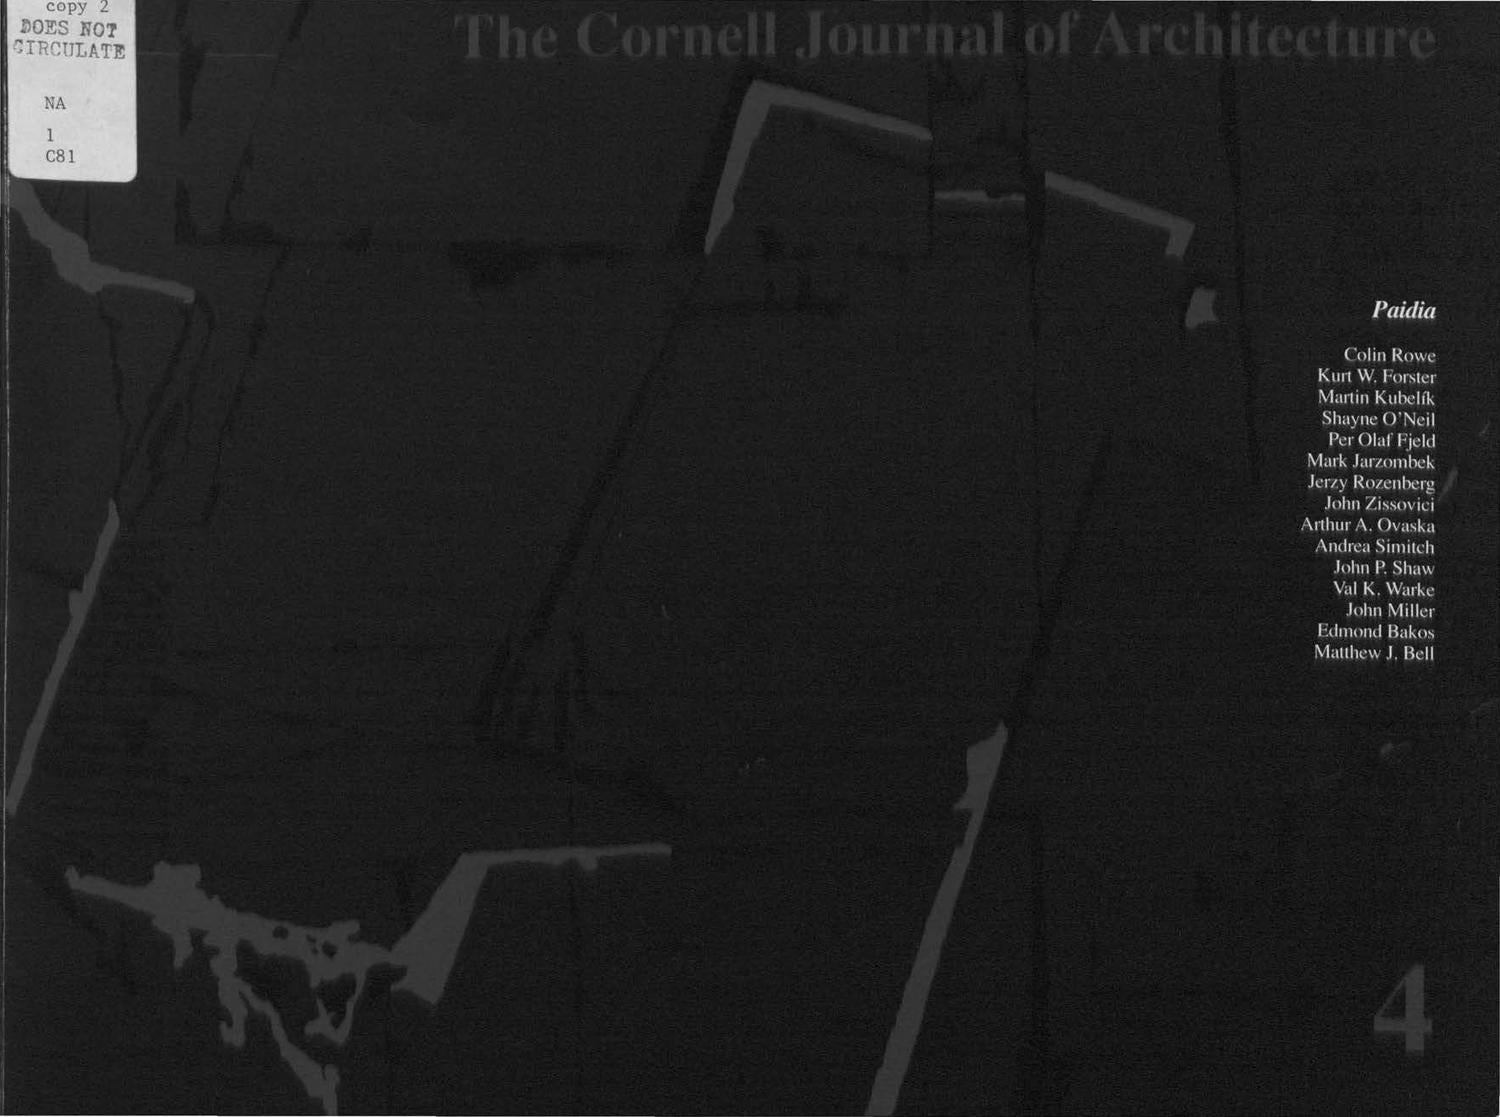 Cornell Journal of Architecture, vol  4 by Cornell AAP - issuu